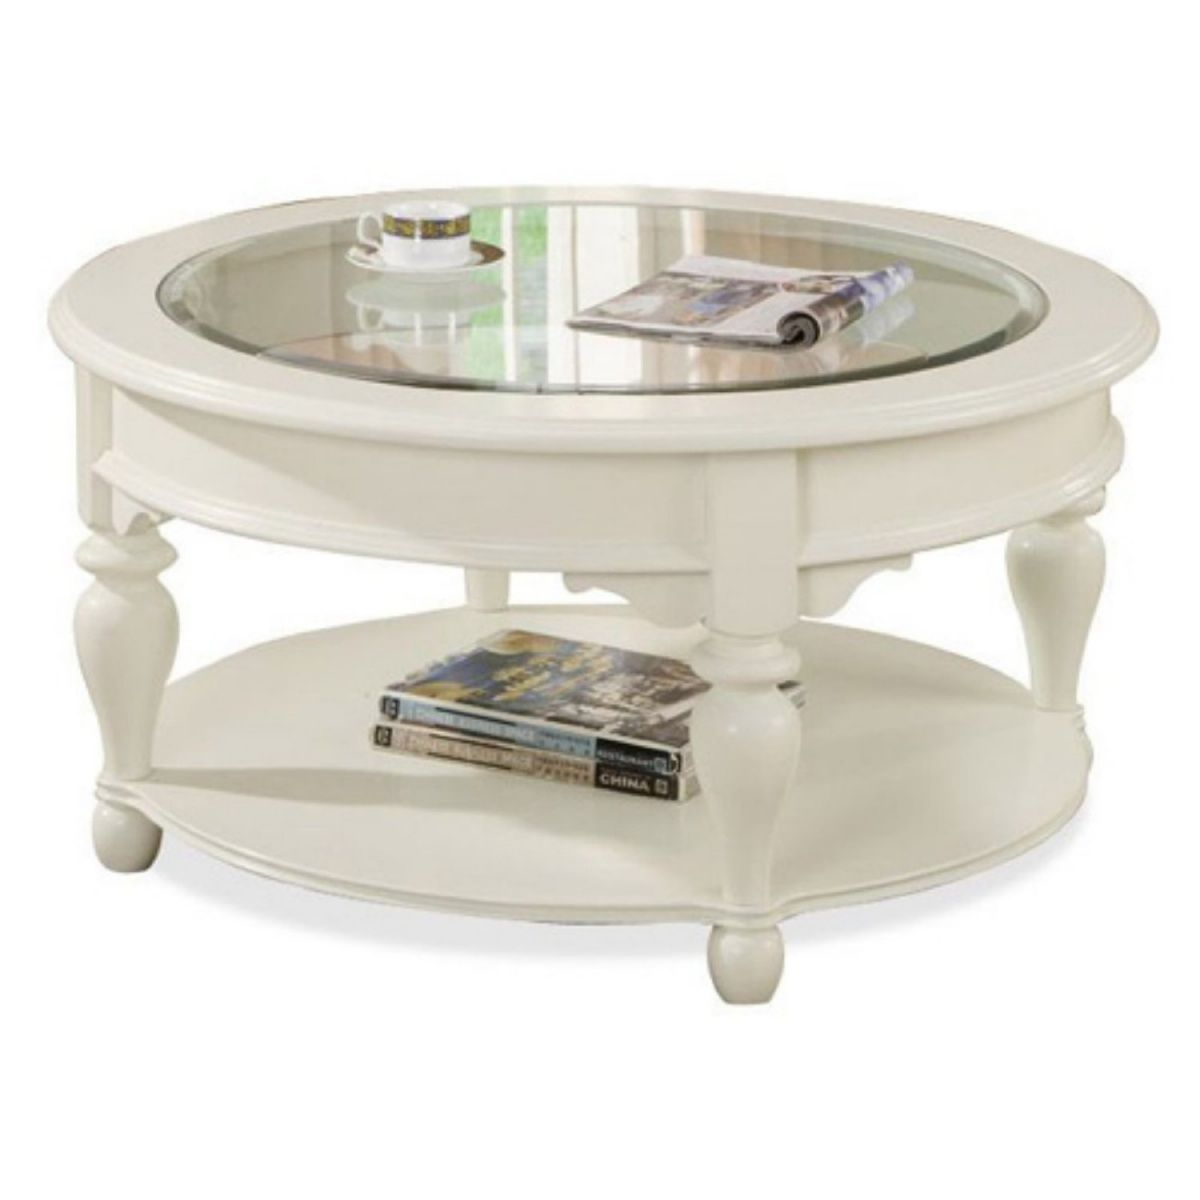 Of The Round Coffee Tables With Storage U2013 Simple And Compact Furniture That Looks